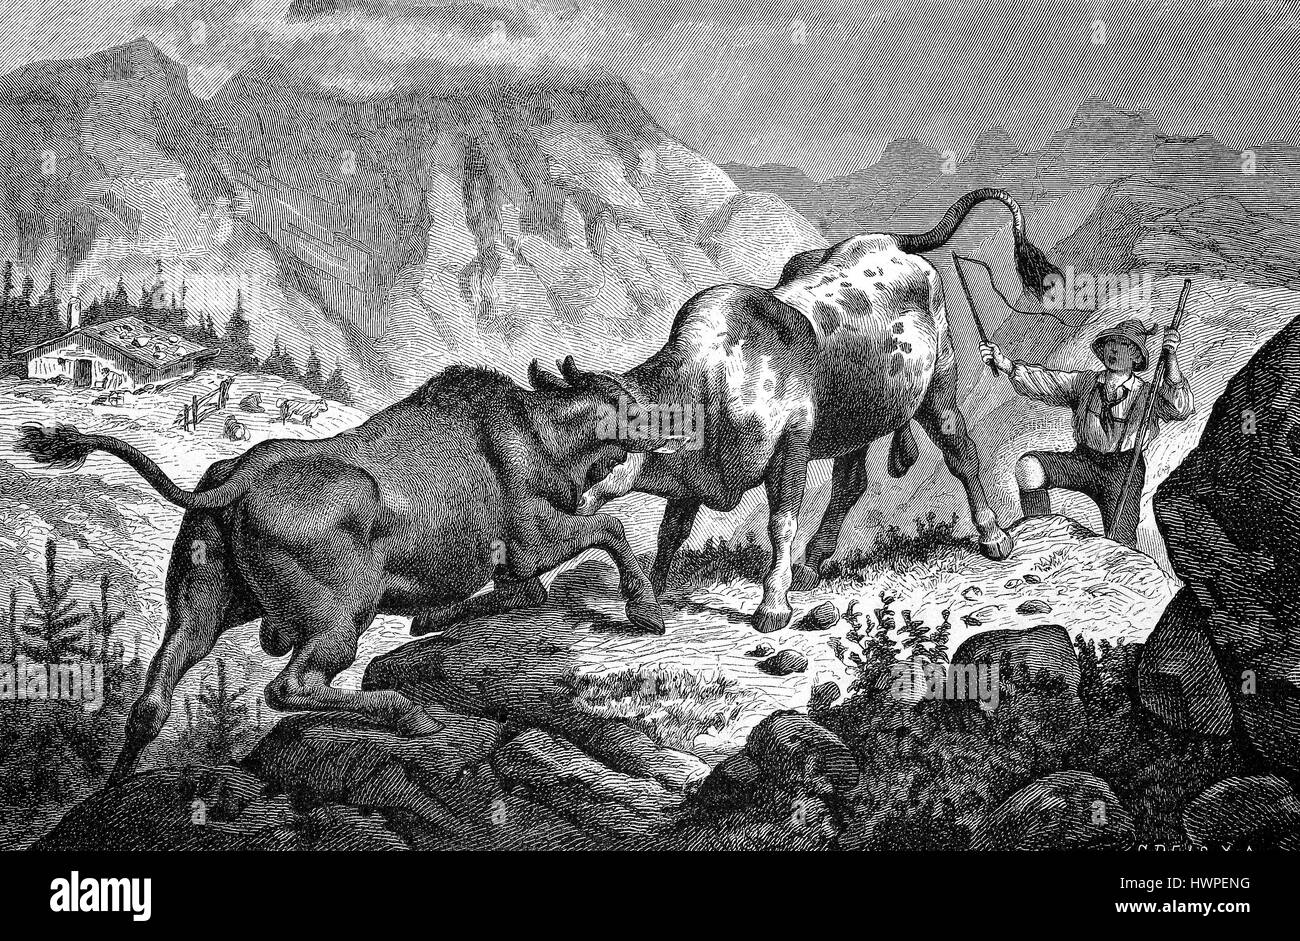 Bullfighting in the Alps, Bavaria, Germany, Reproduction of an original woodcut from the year 1882, digital improved - Stock Image